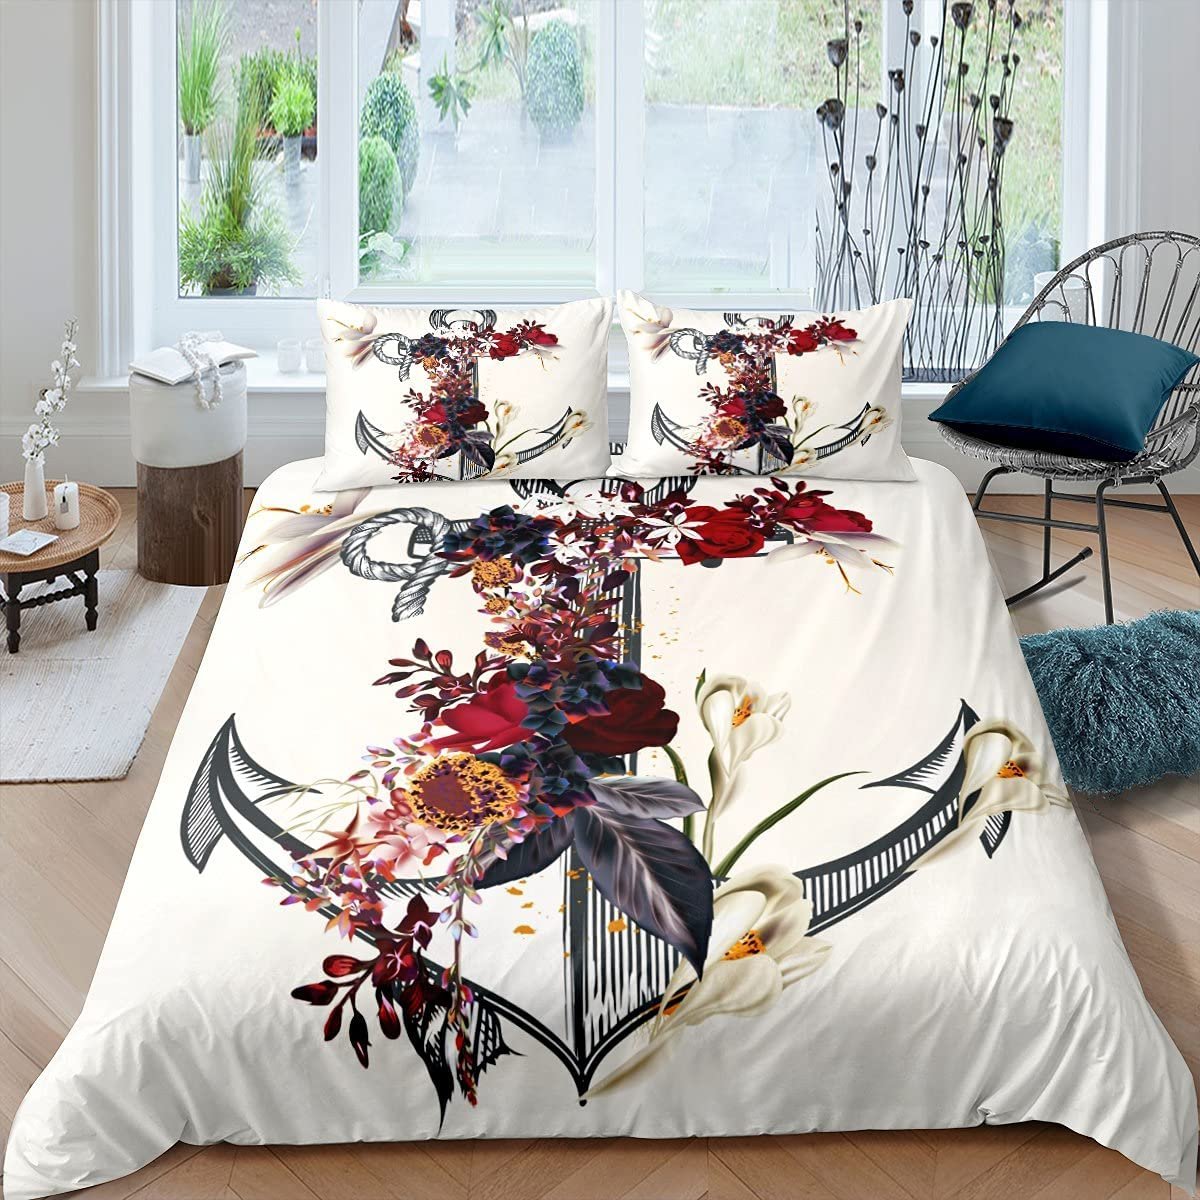 Castle Fairy Luxury Anchor Duvet Cover Twin Max 66% OFF Red Flower Bedspr Rose Size